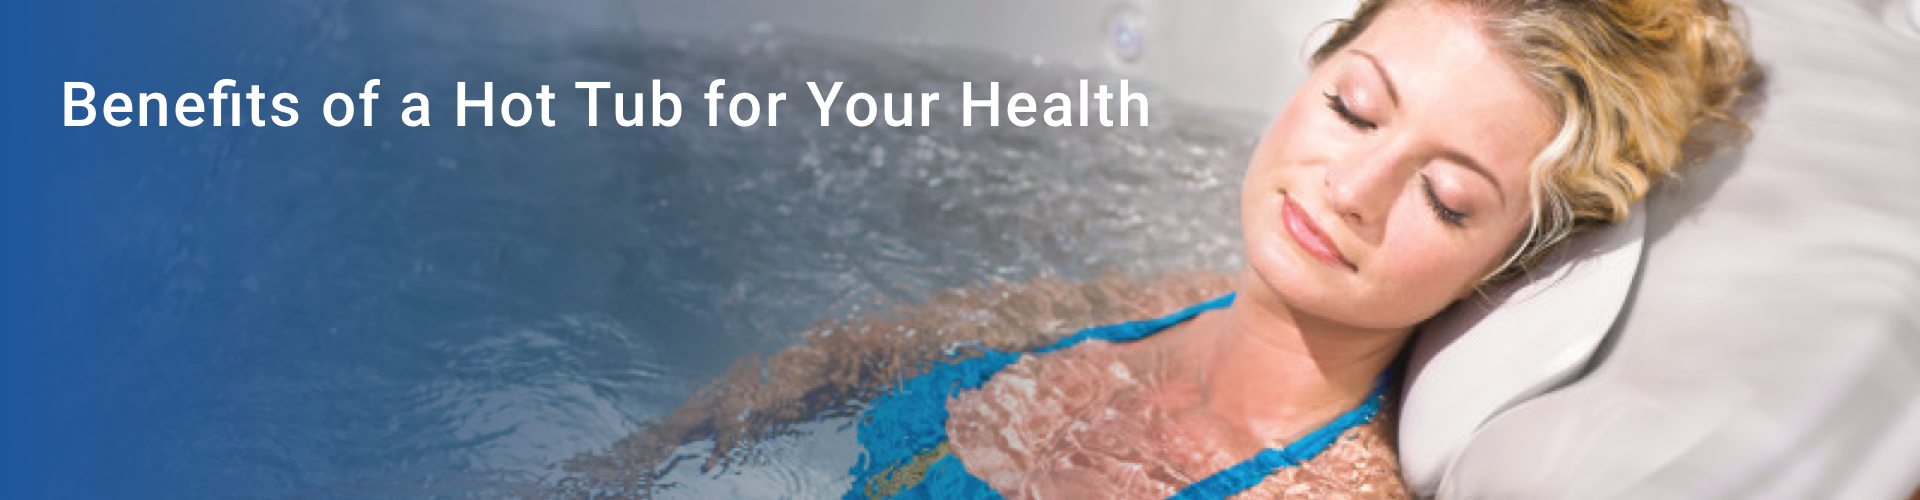 Benefits of a Hot Tub for Your Health